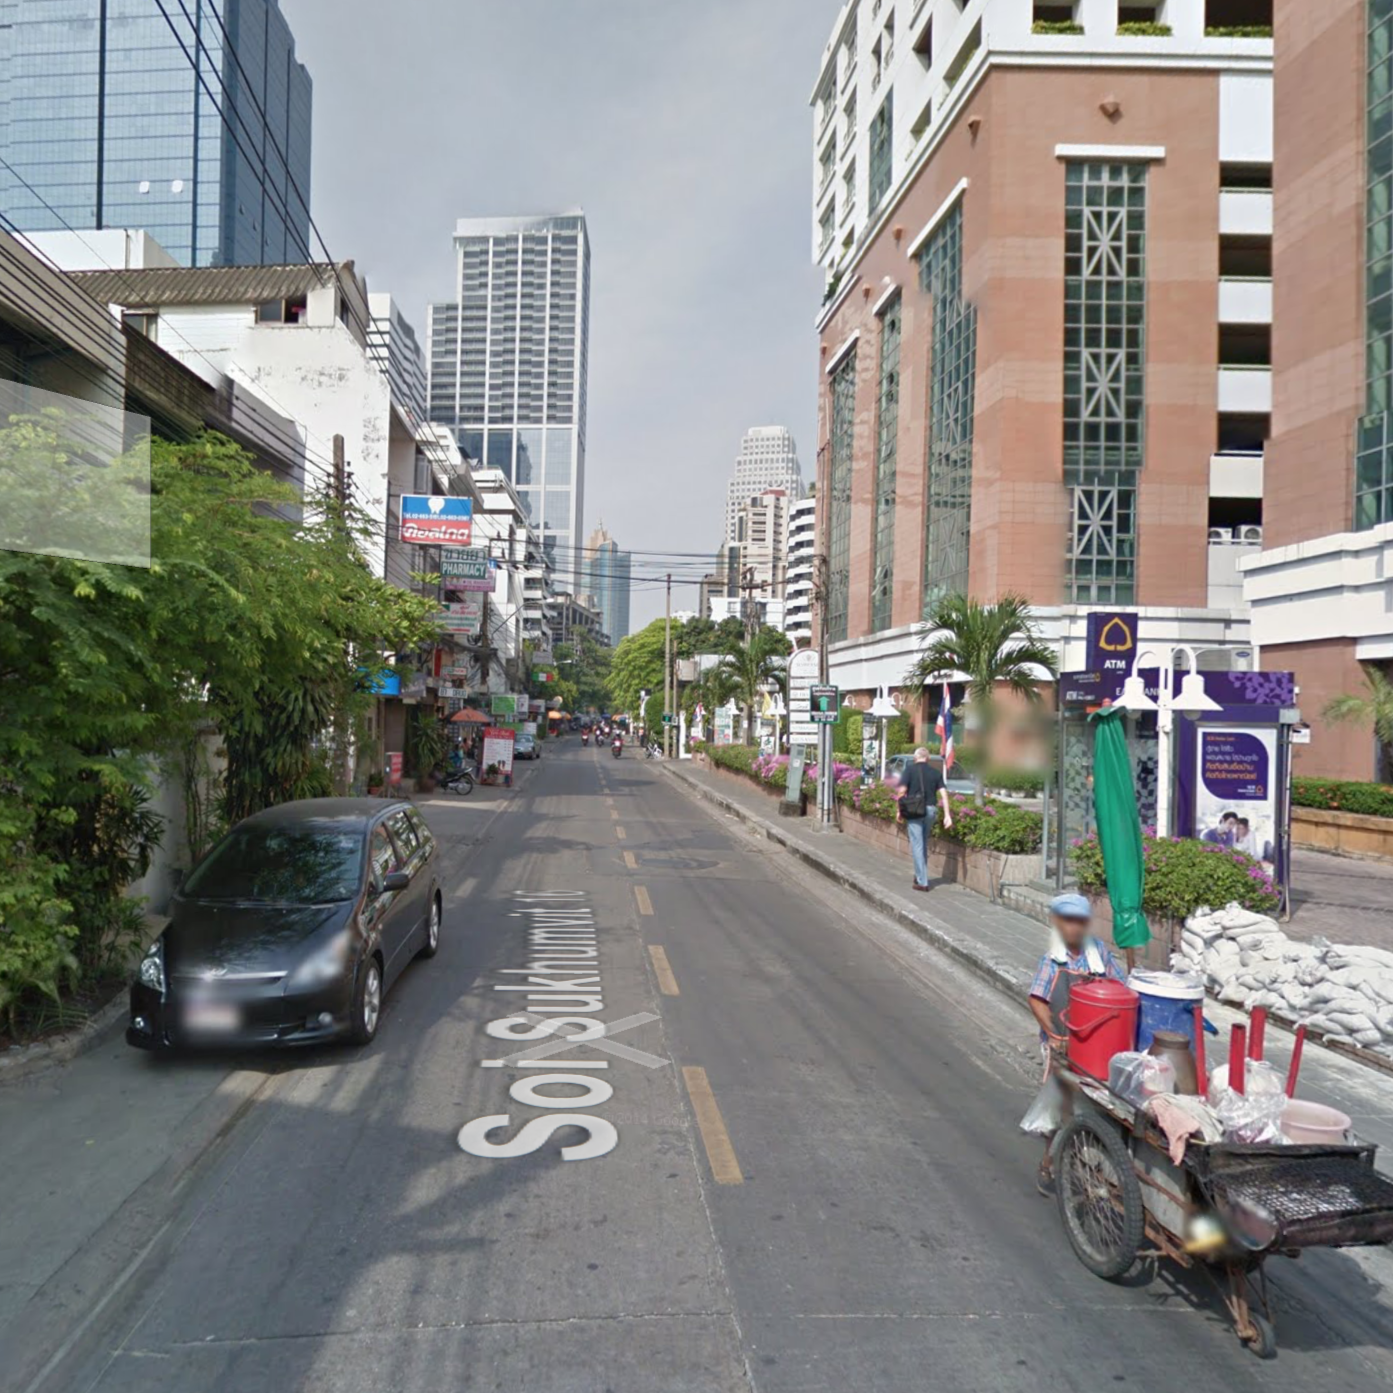 Sukhumvit 16 from Google Maps